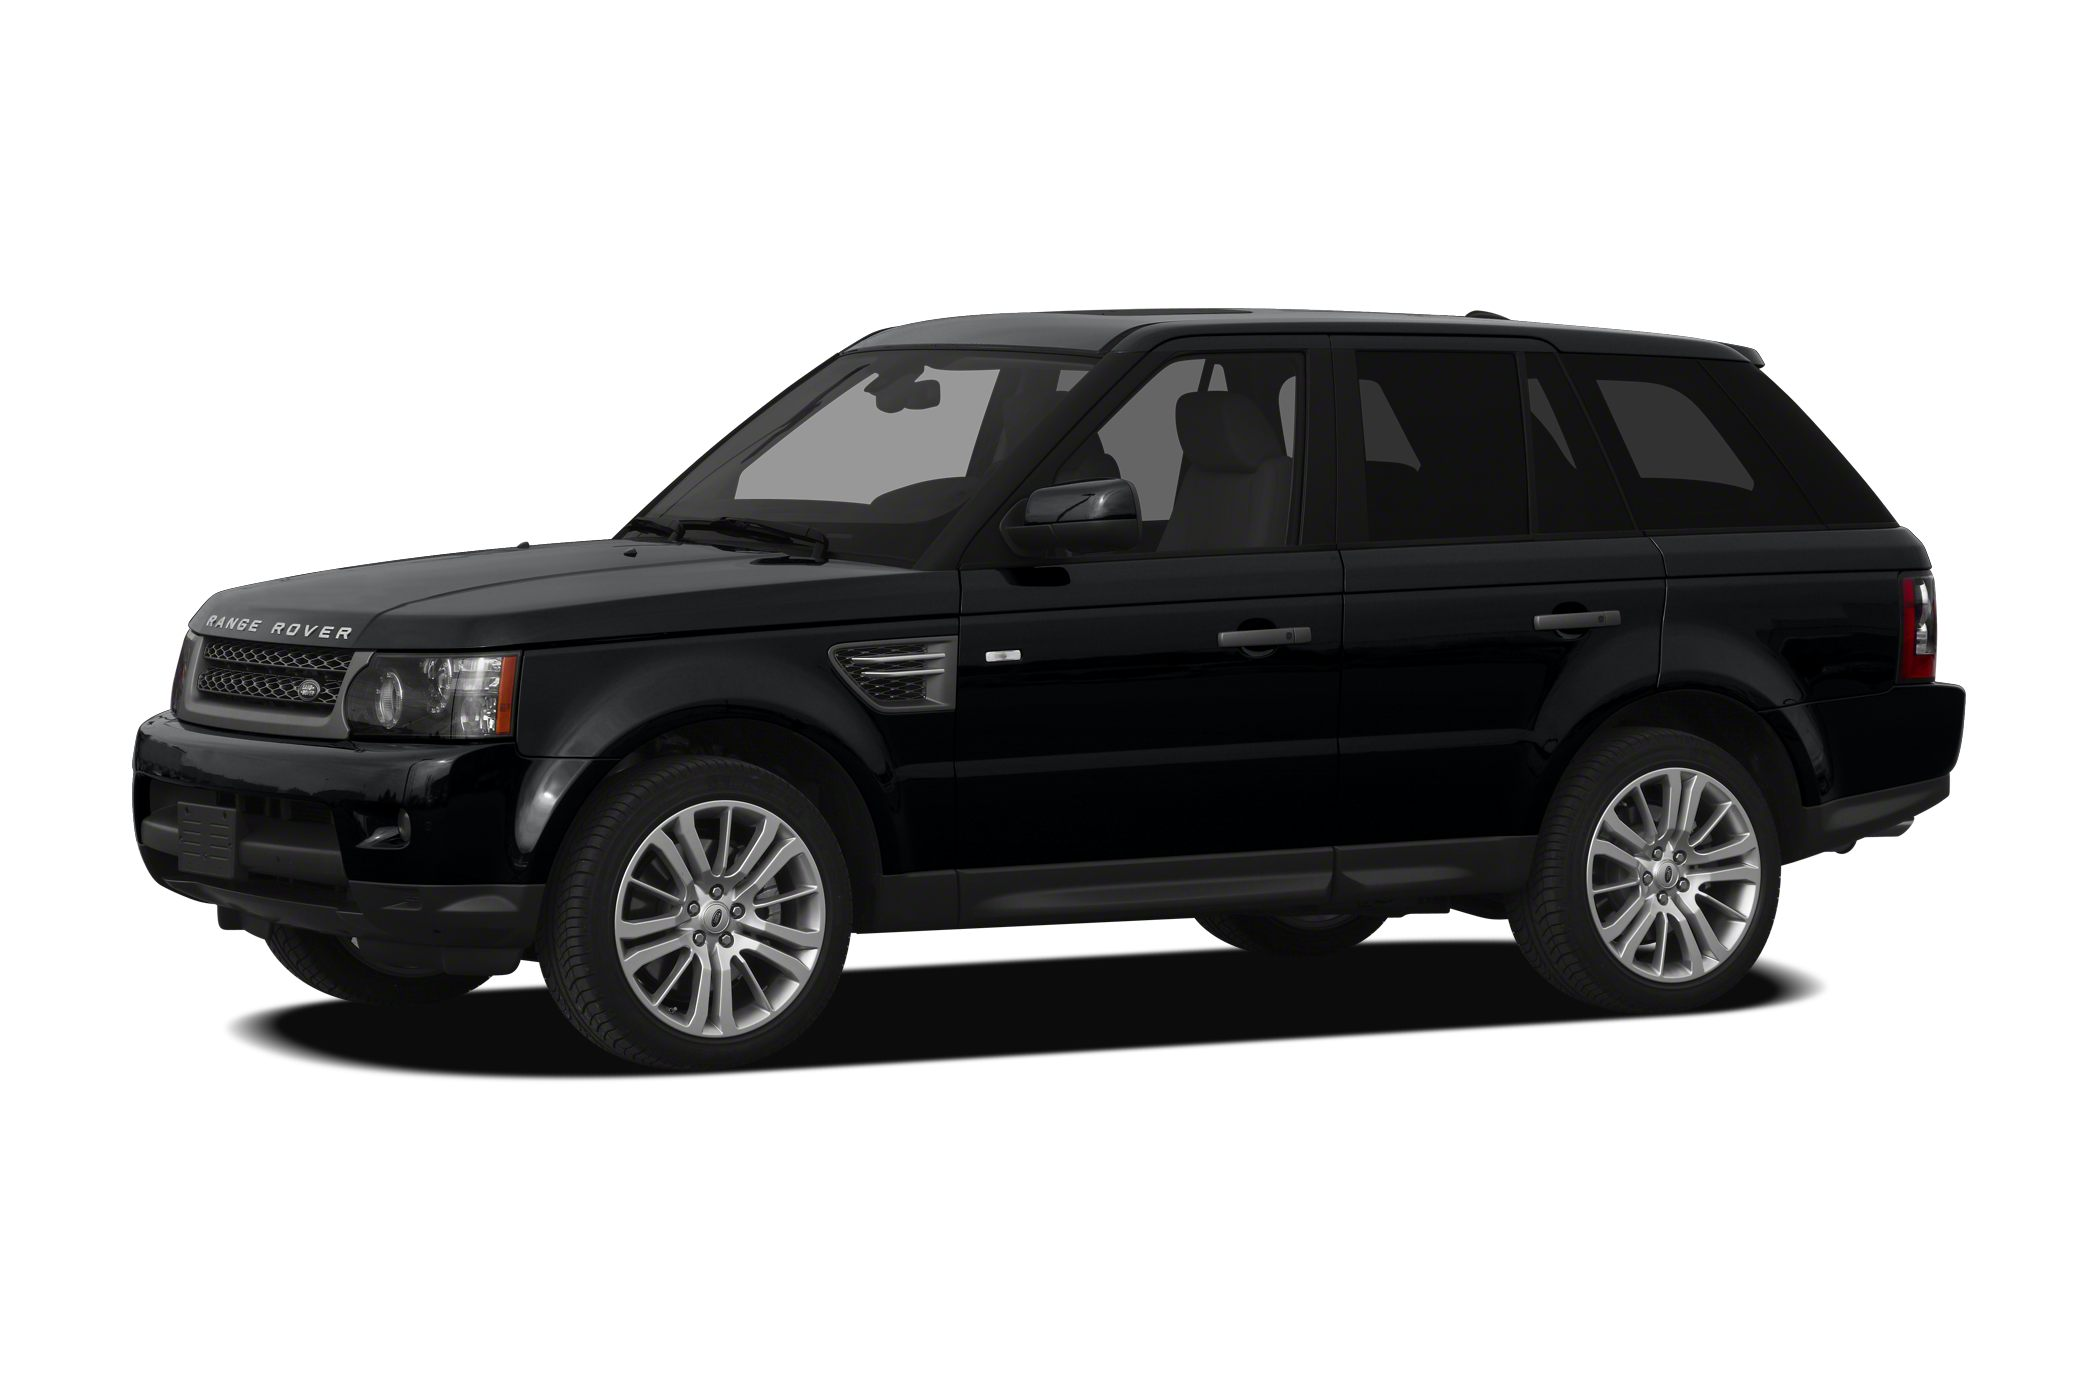 2011 Land Rover Range Rover Sport HSE SUV for sale in Philadelphia for $46,577 with 36,500 miles.